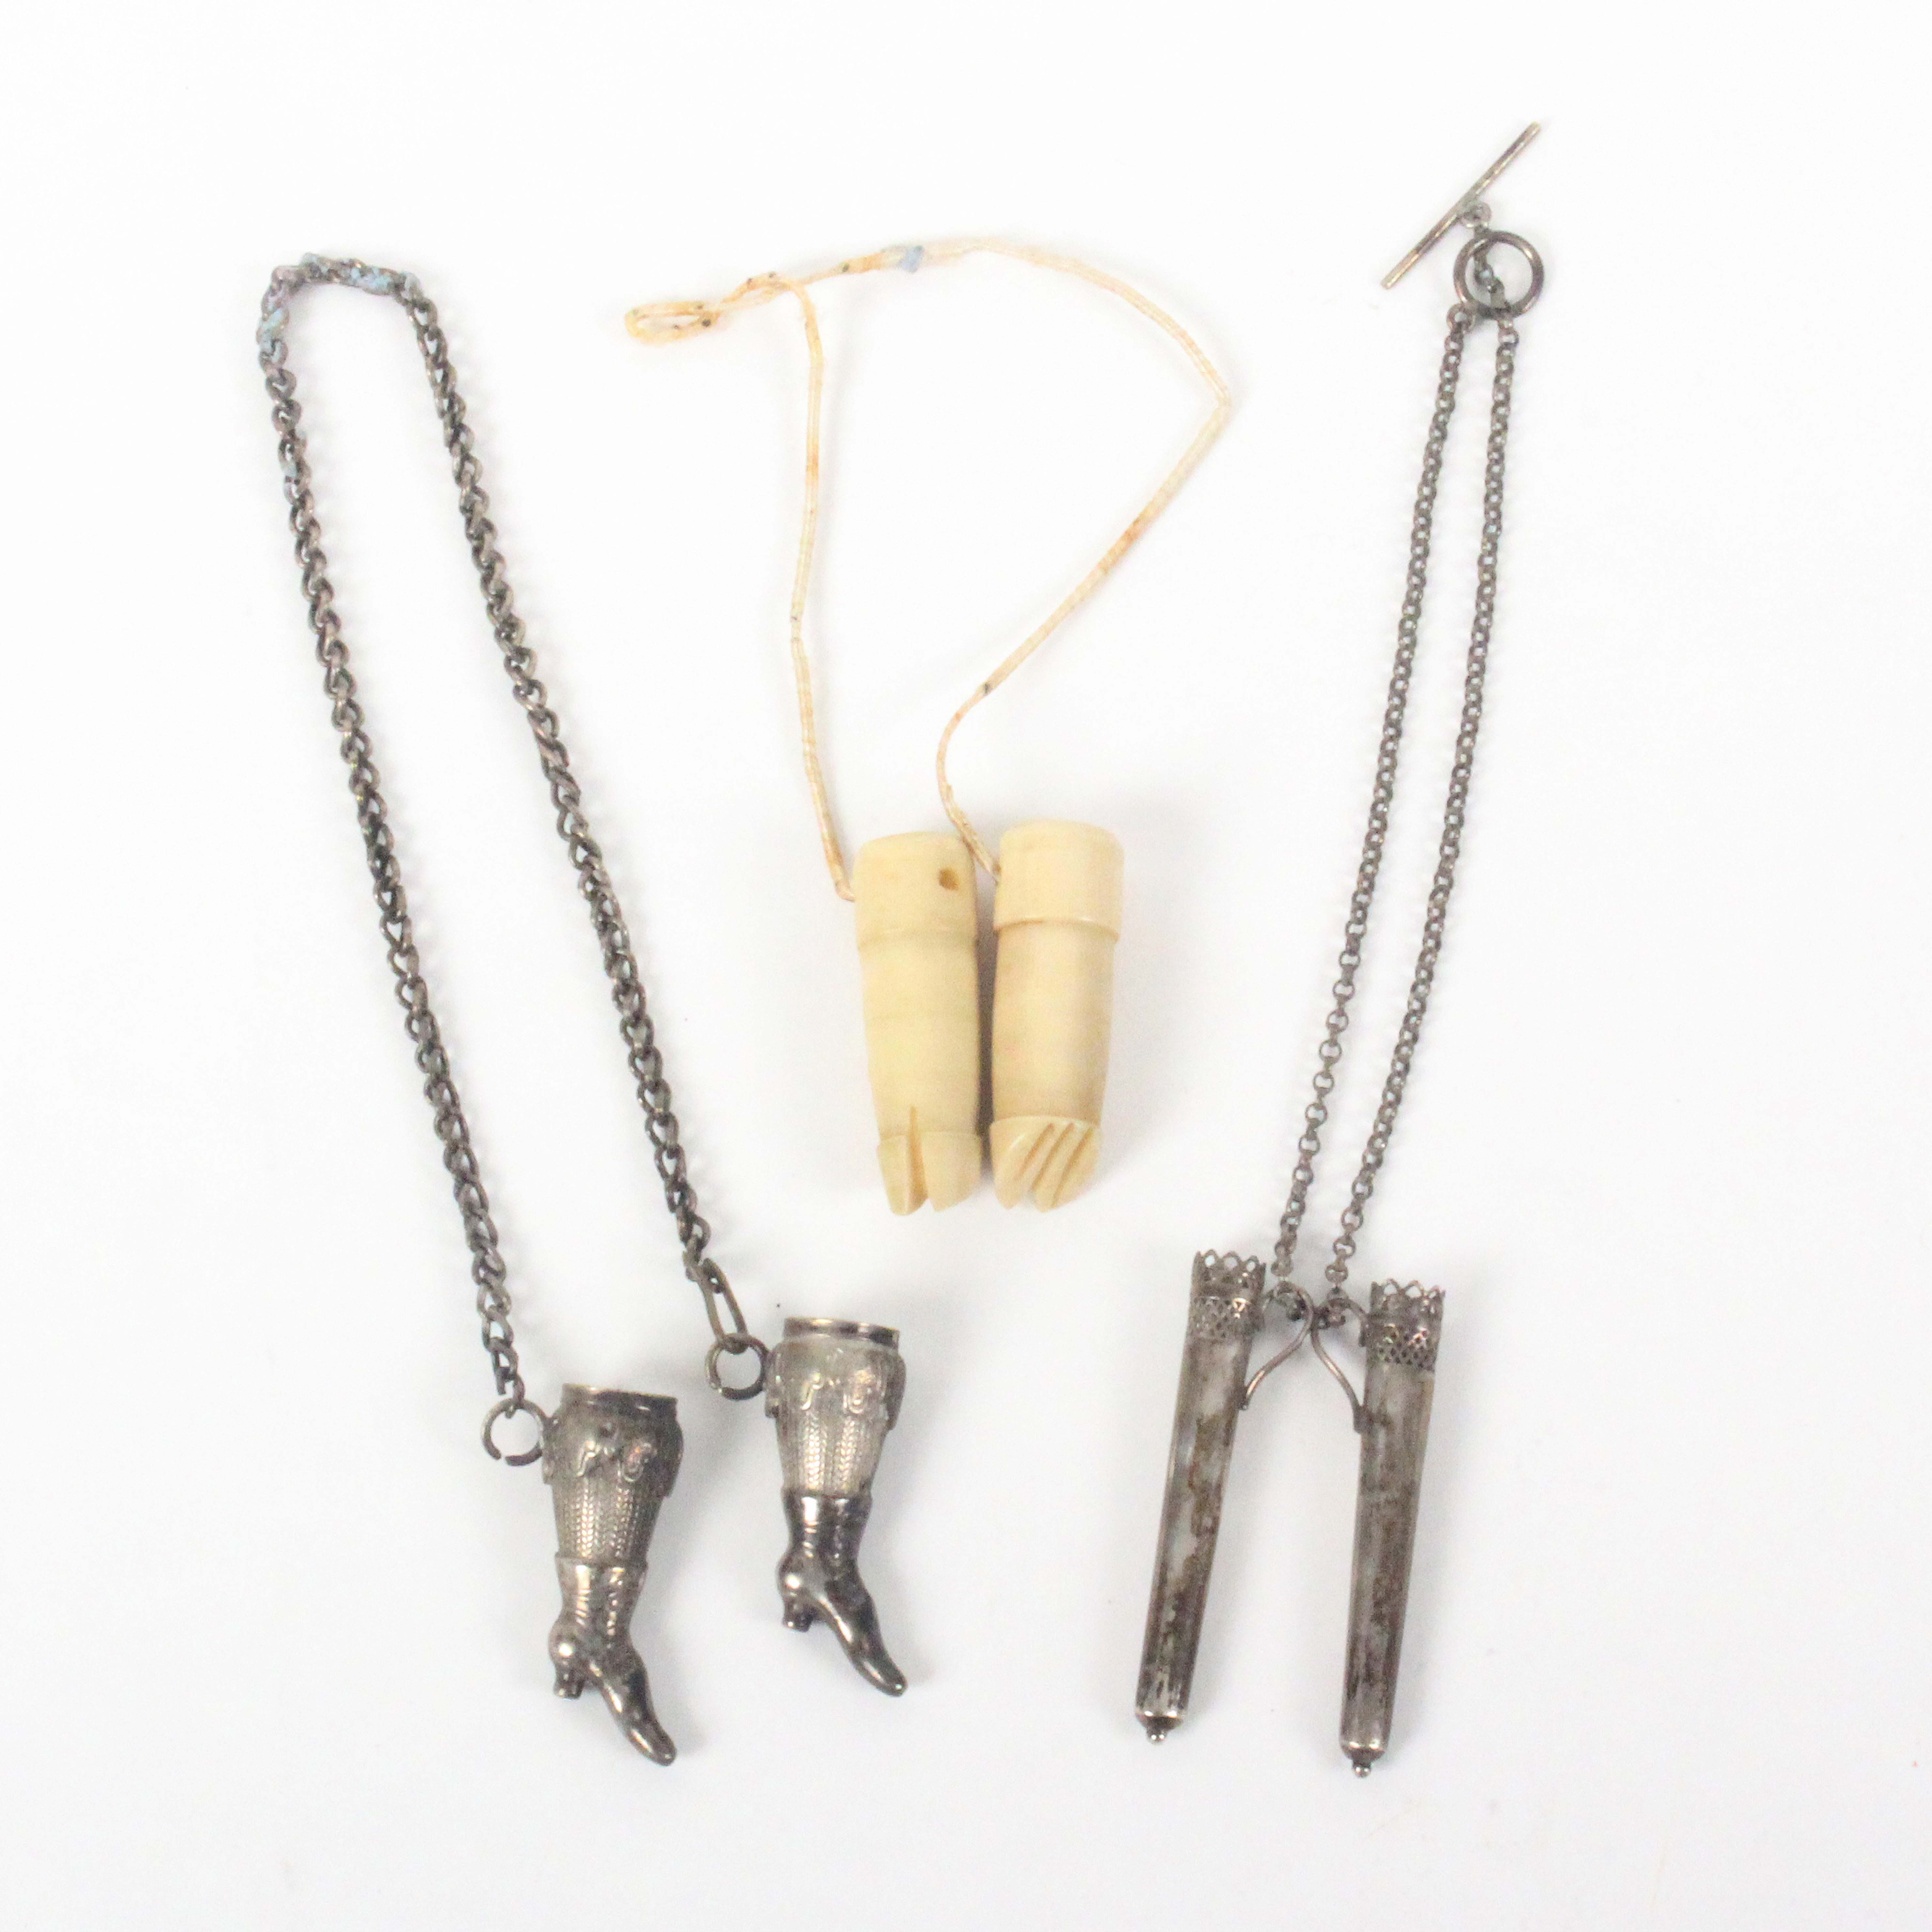 Three pairs of knitting needle protectors, comprising a silver pair in the form of lady's boots